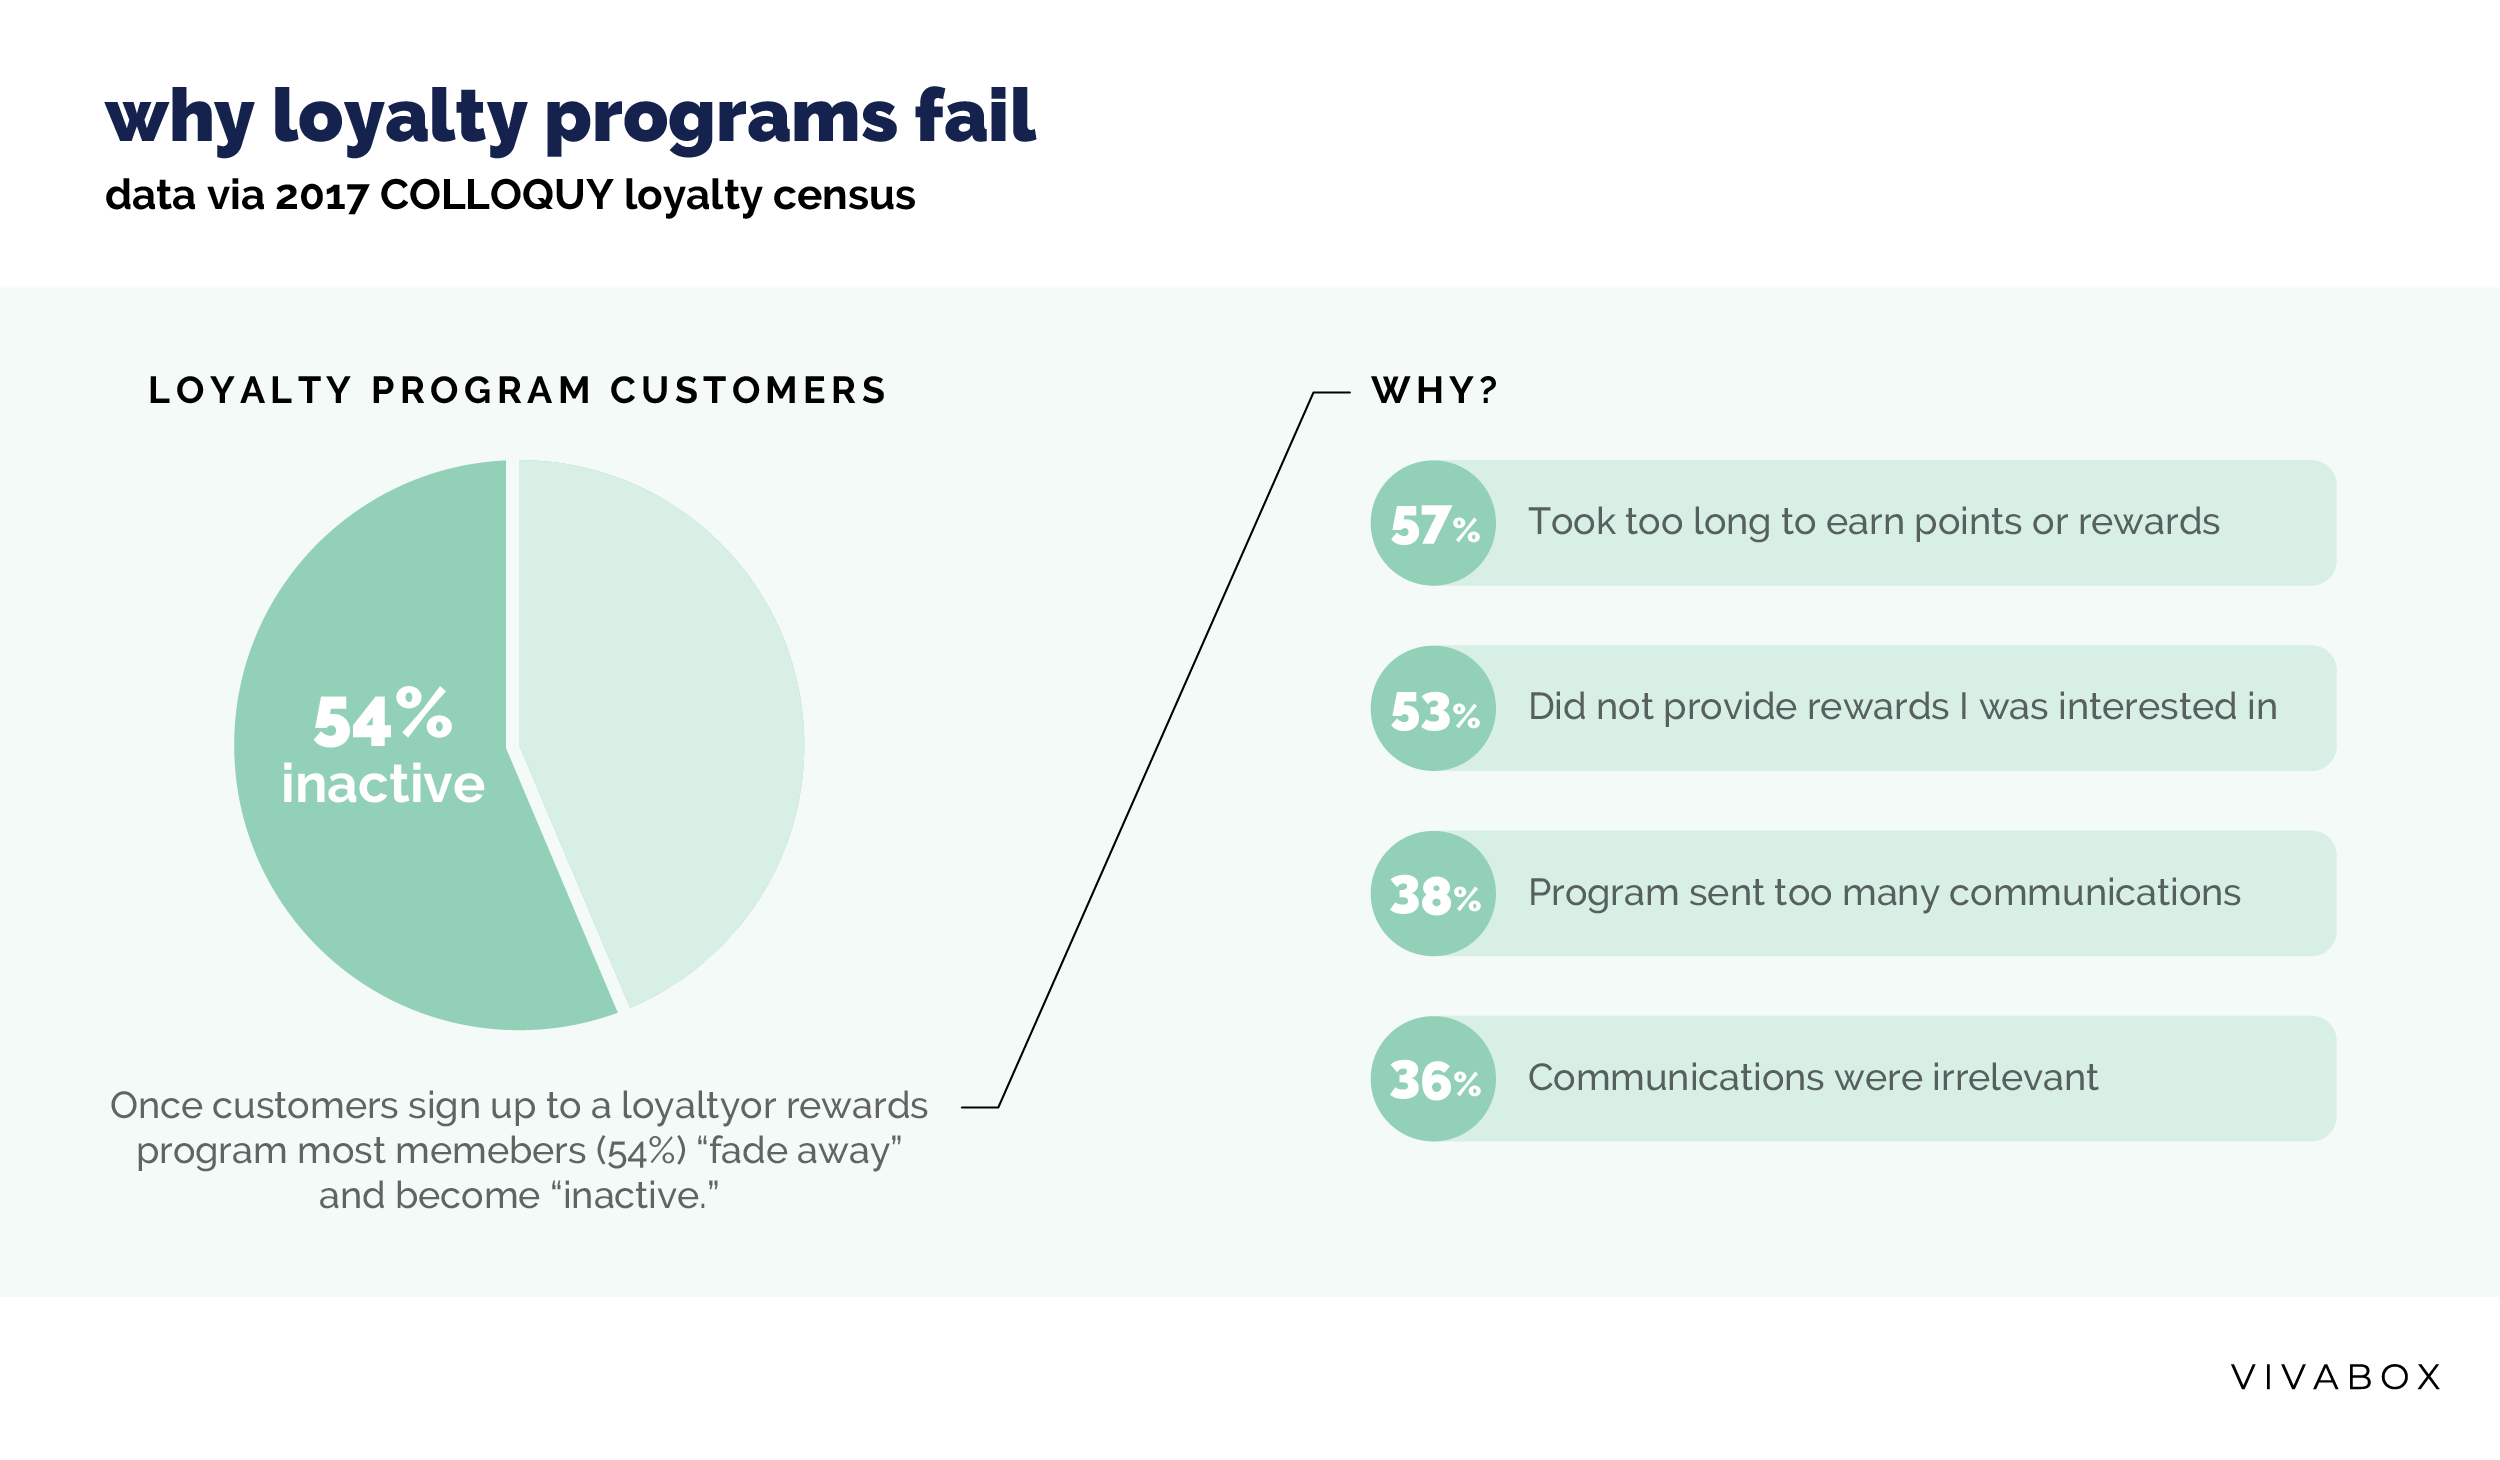 why-loyalty-programs-fail_infographic-01-01.png